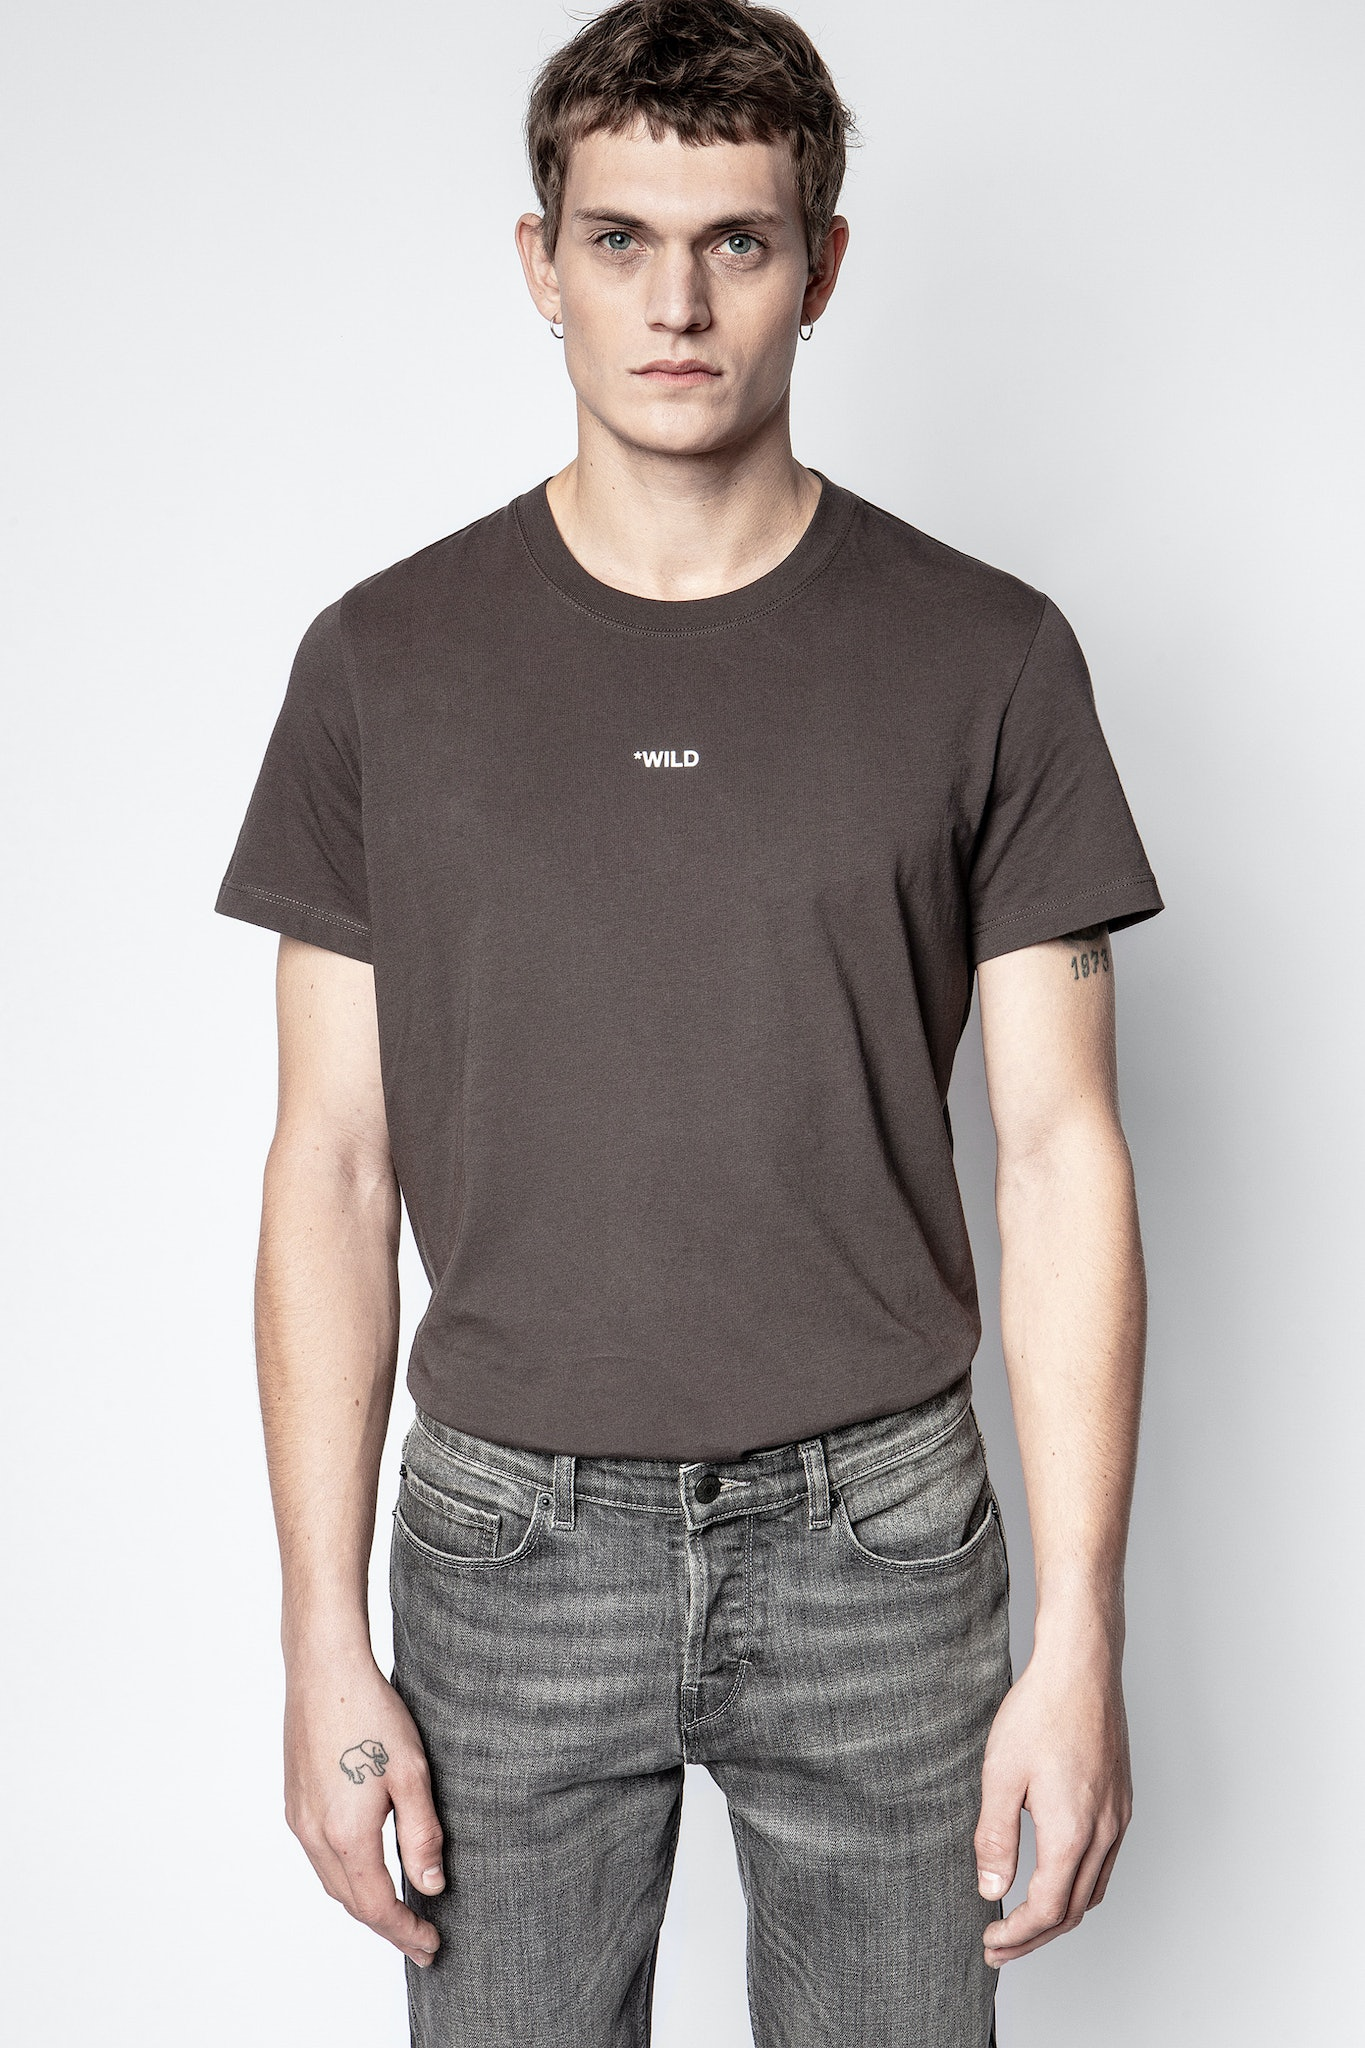 T-Shirt Ted Photoprint Wild